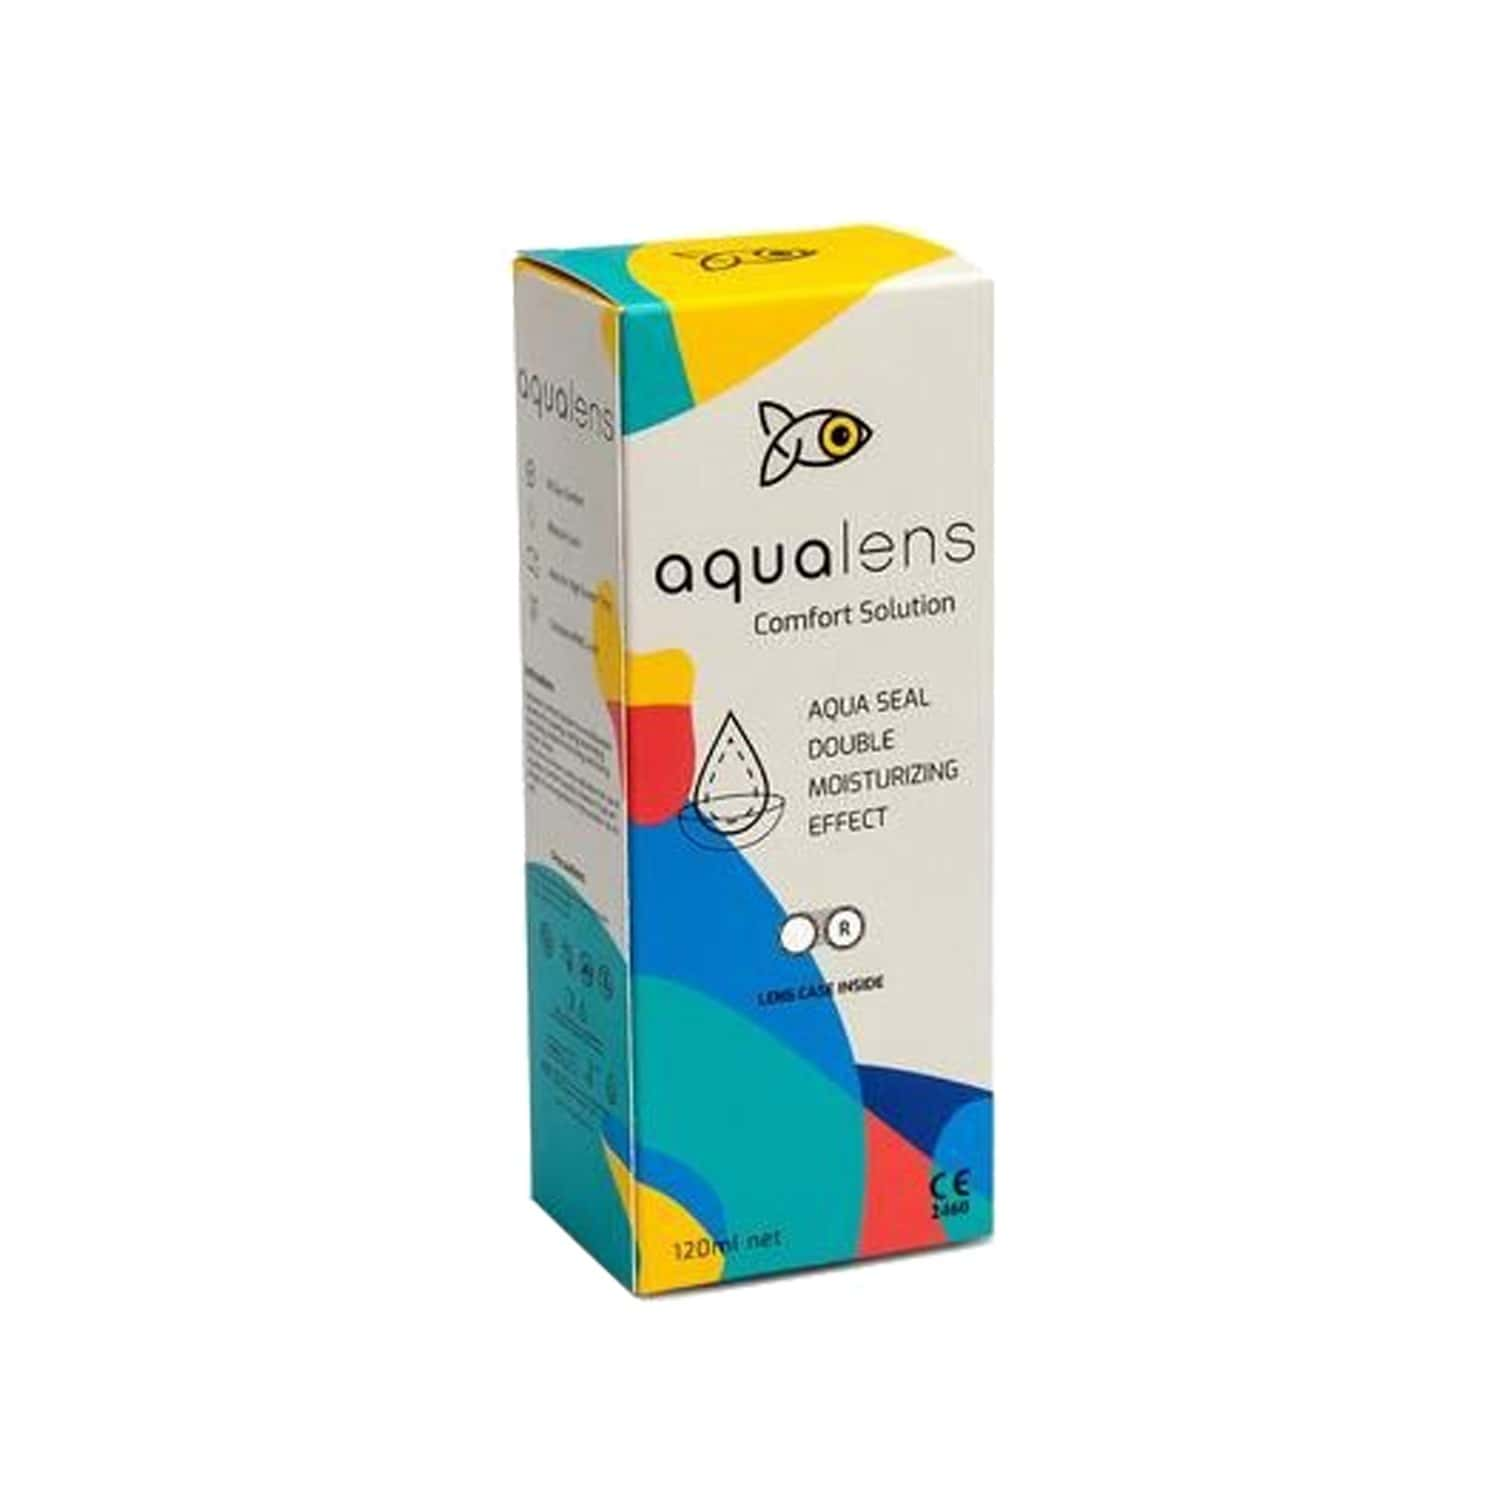 Aqualens Comfort Contact Lens Solution (lens Care Free) Bottle Of 120 Ml